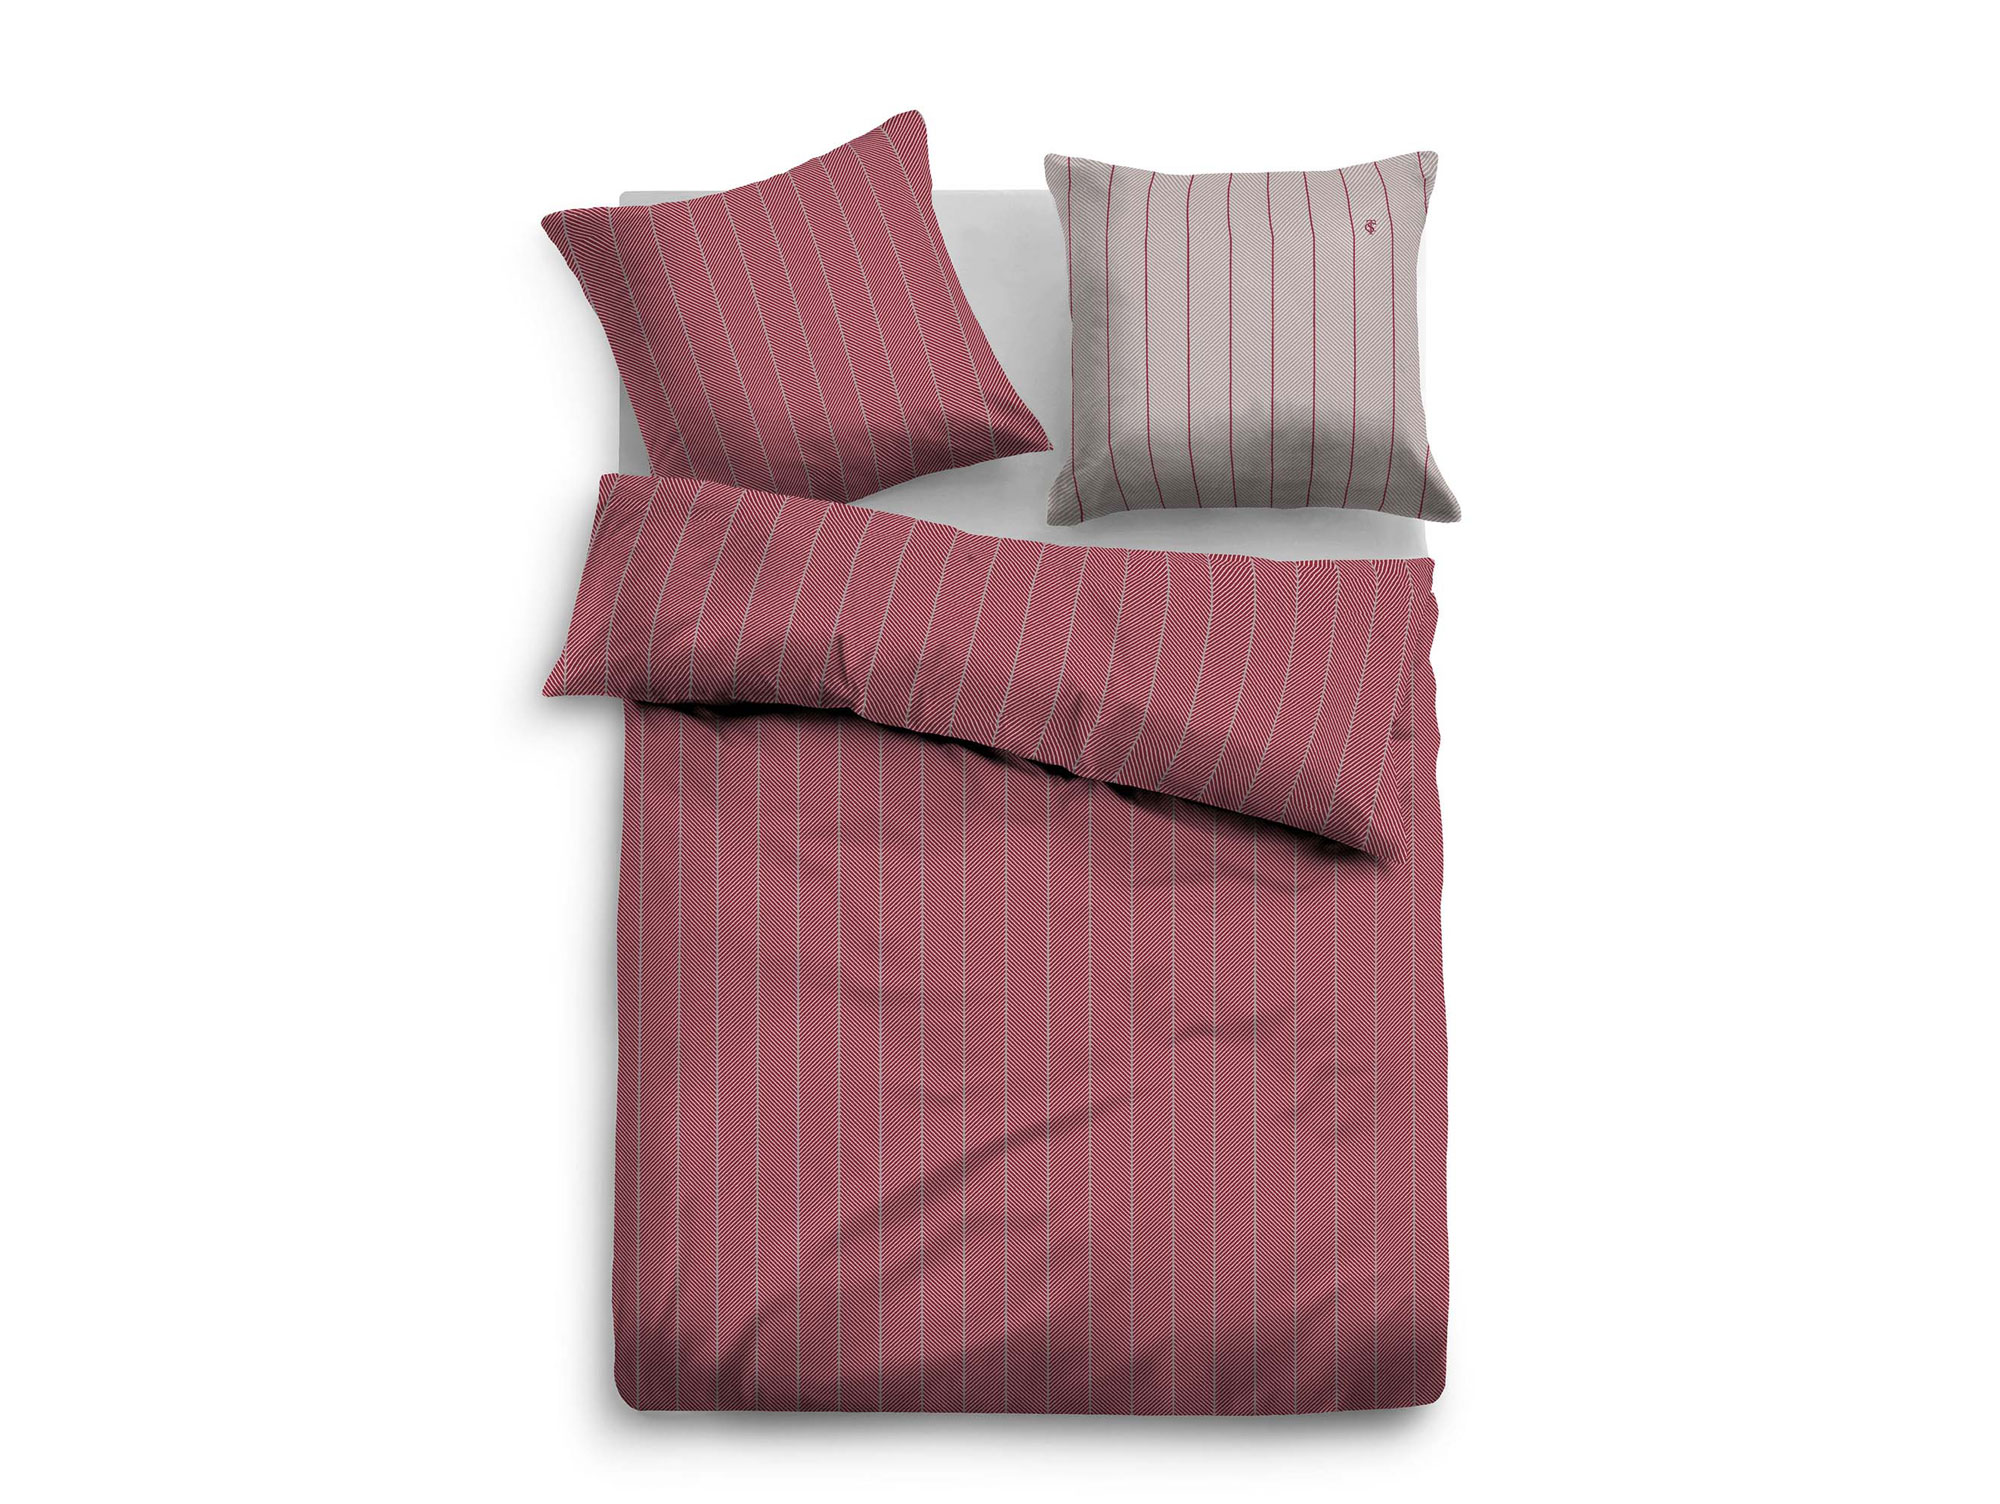 tom tailor bettw sche satin bed linen 135x200 80x80 cm